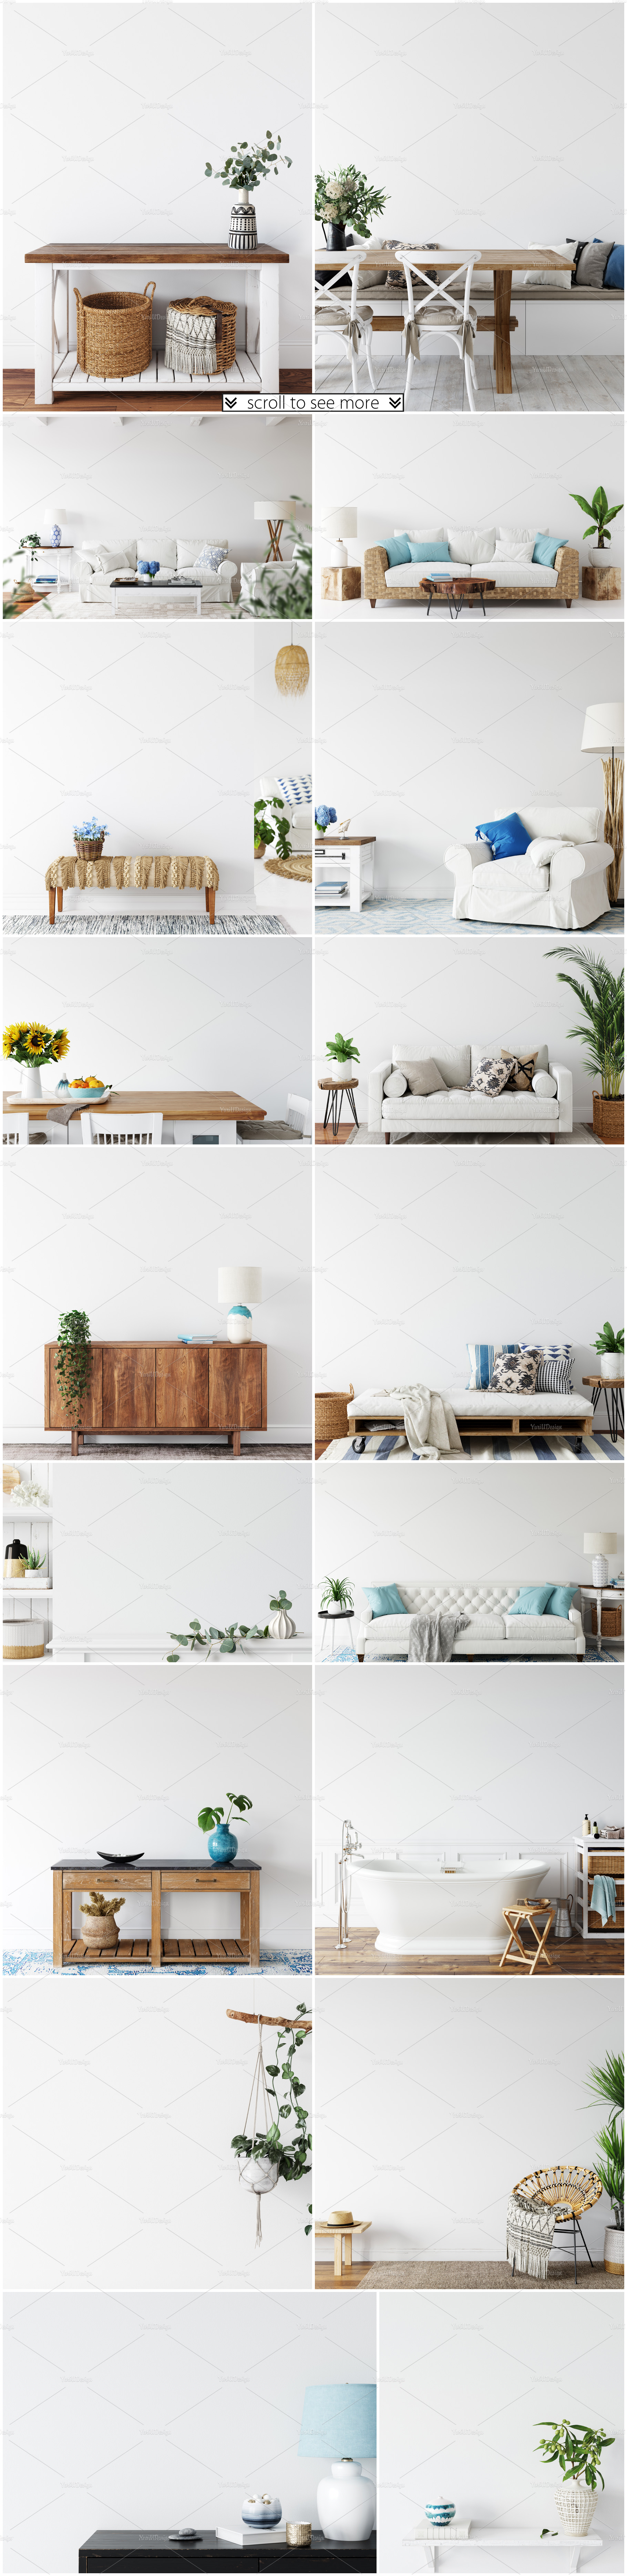 Frames & Walls Coastal Mockups Bundle example image 4